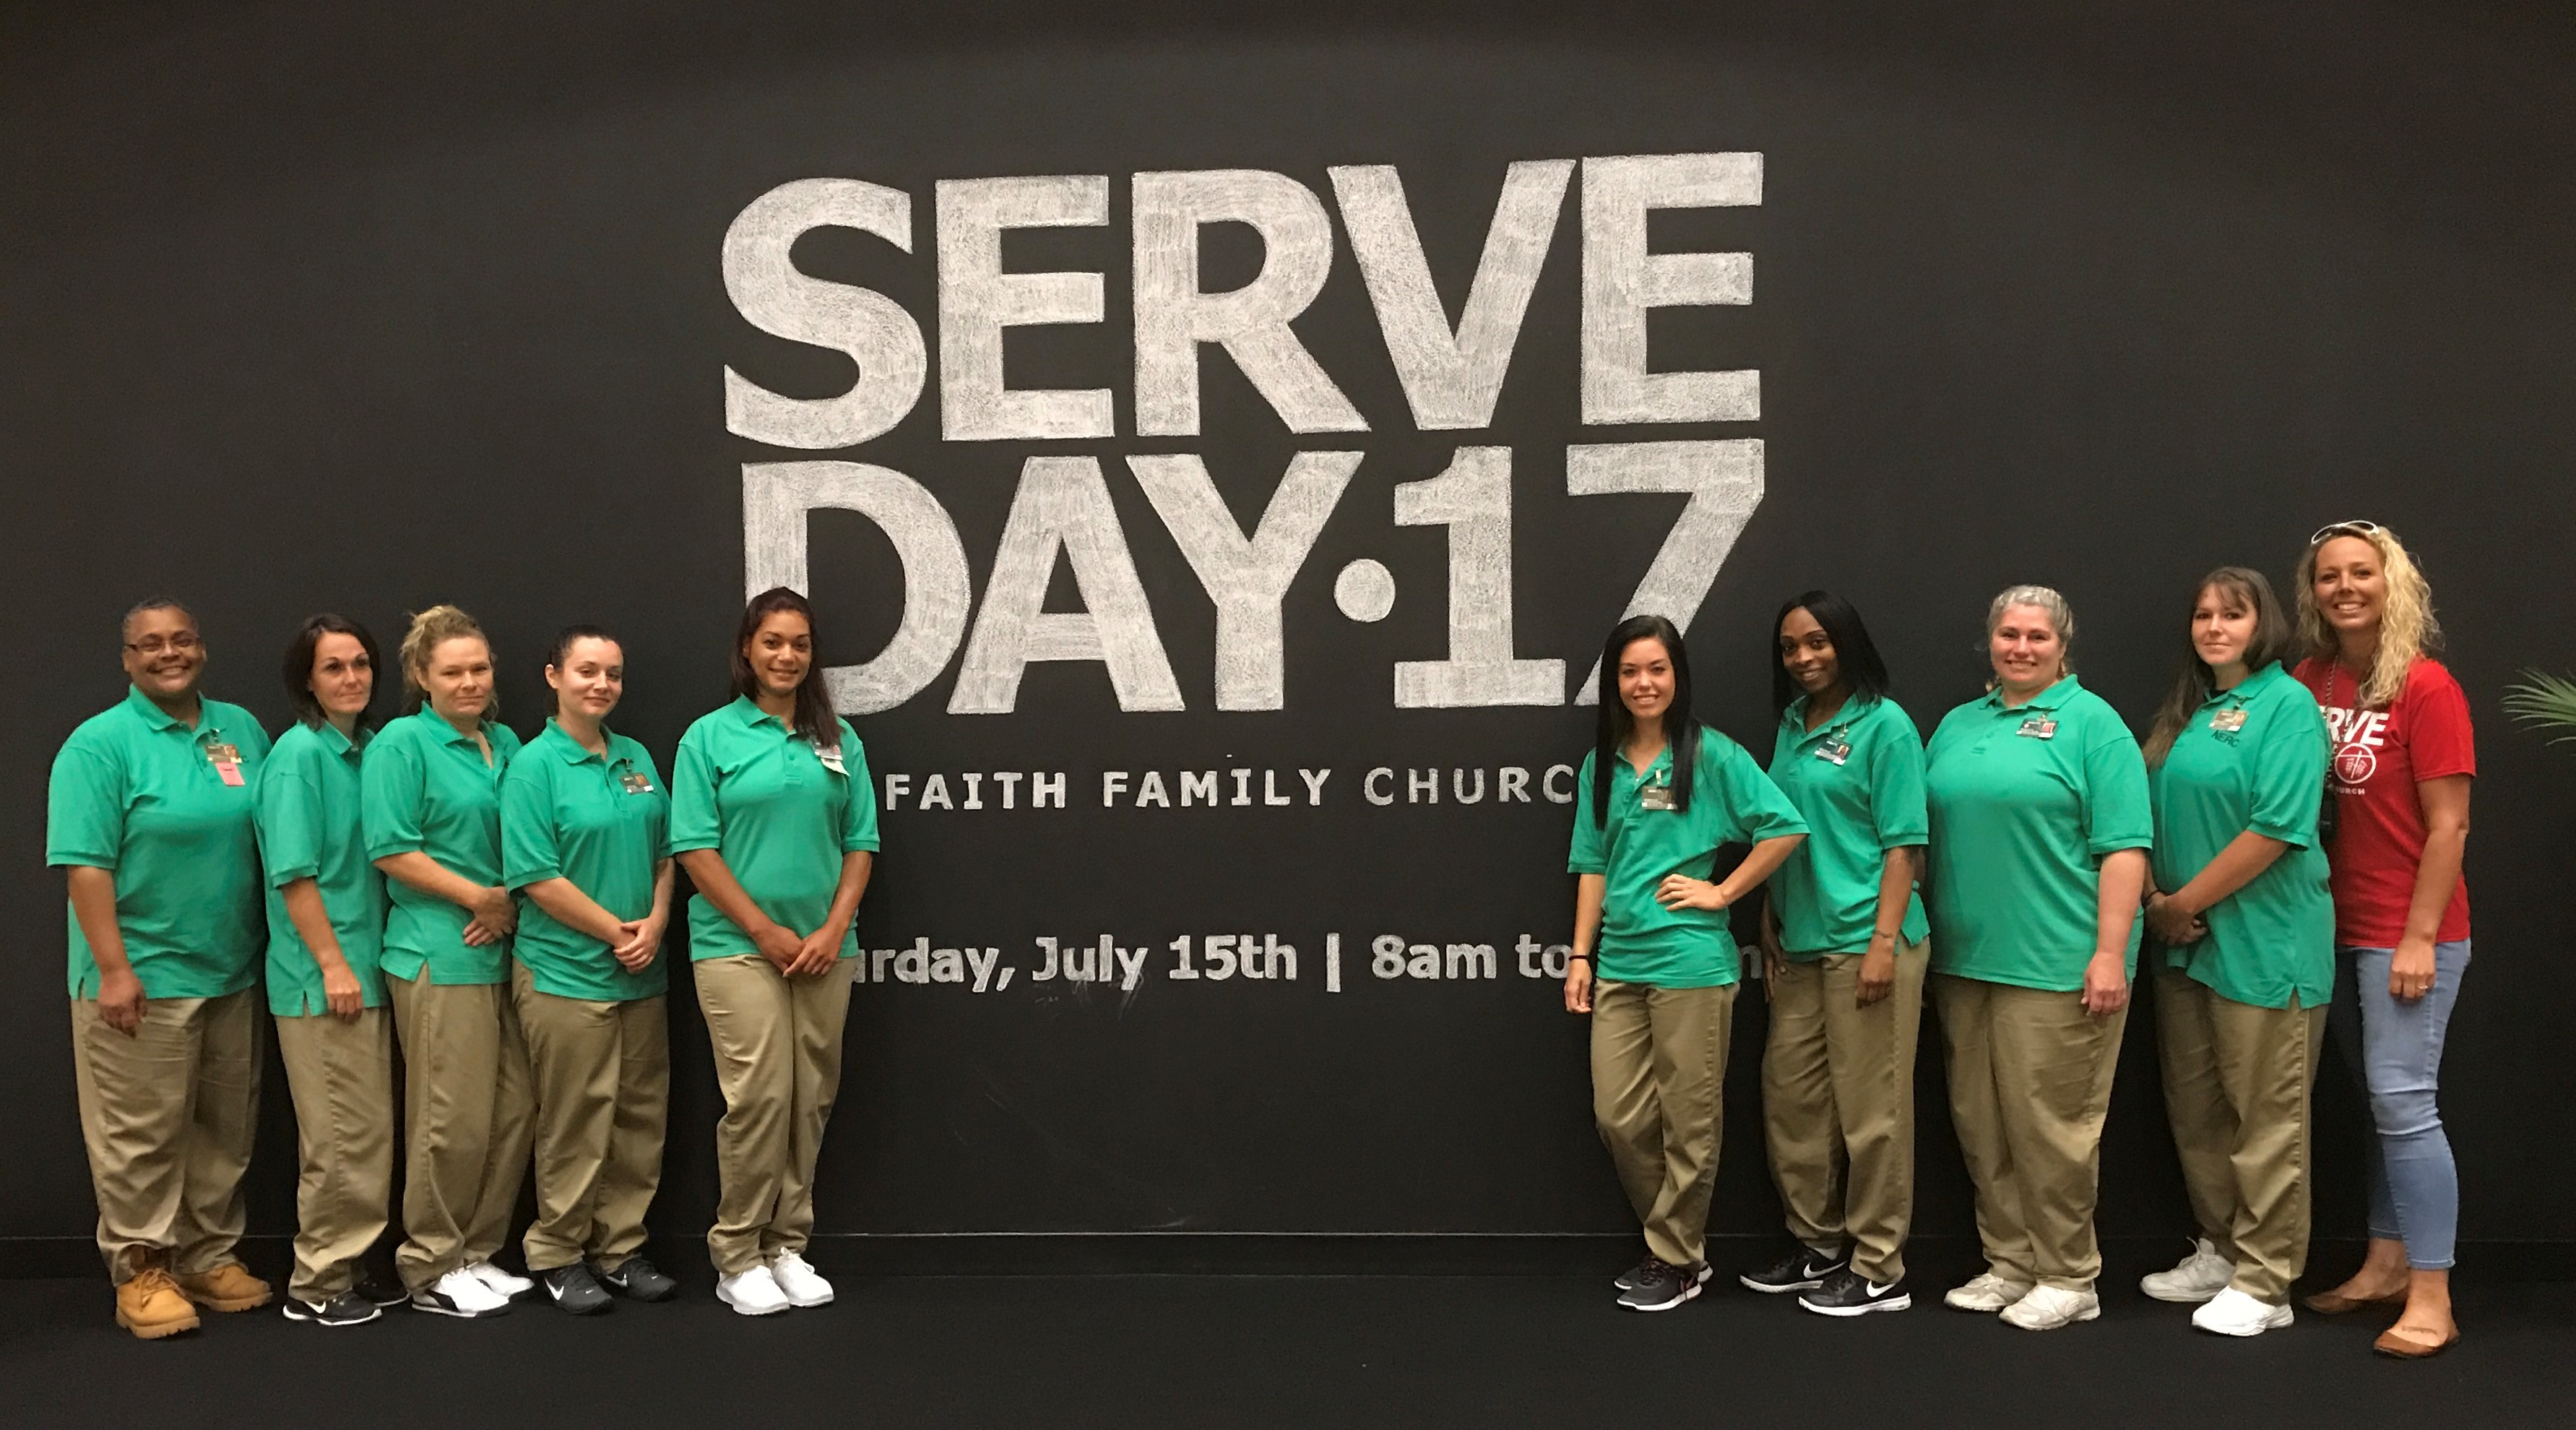 NERC Residents Participates in Serve Day 2017